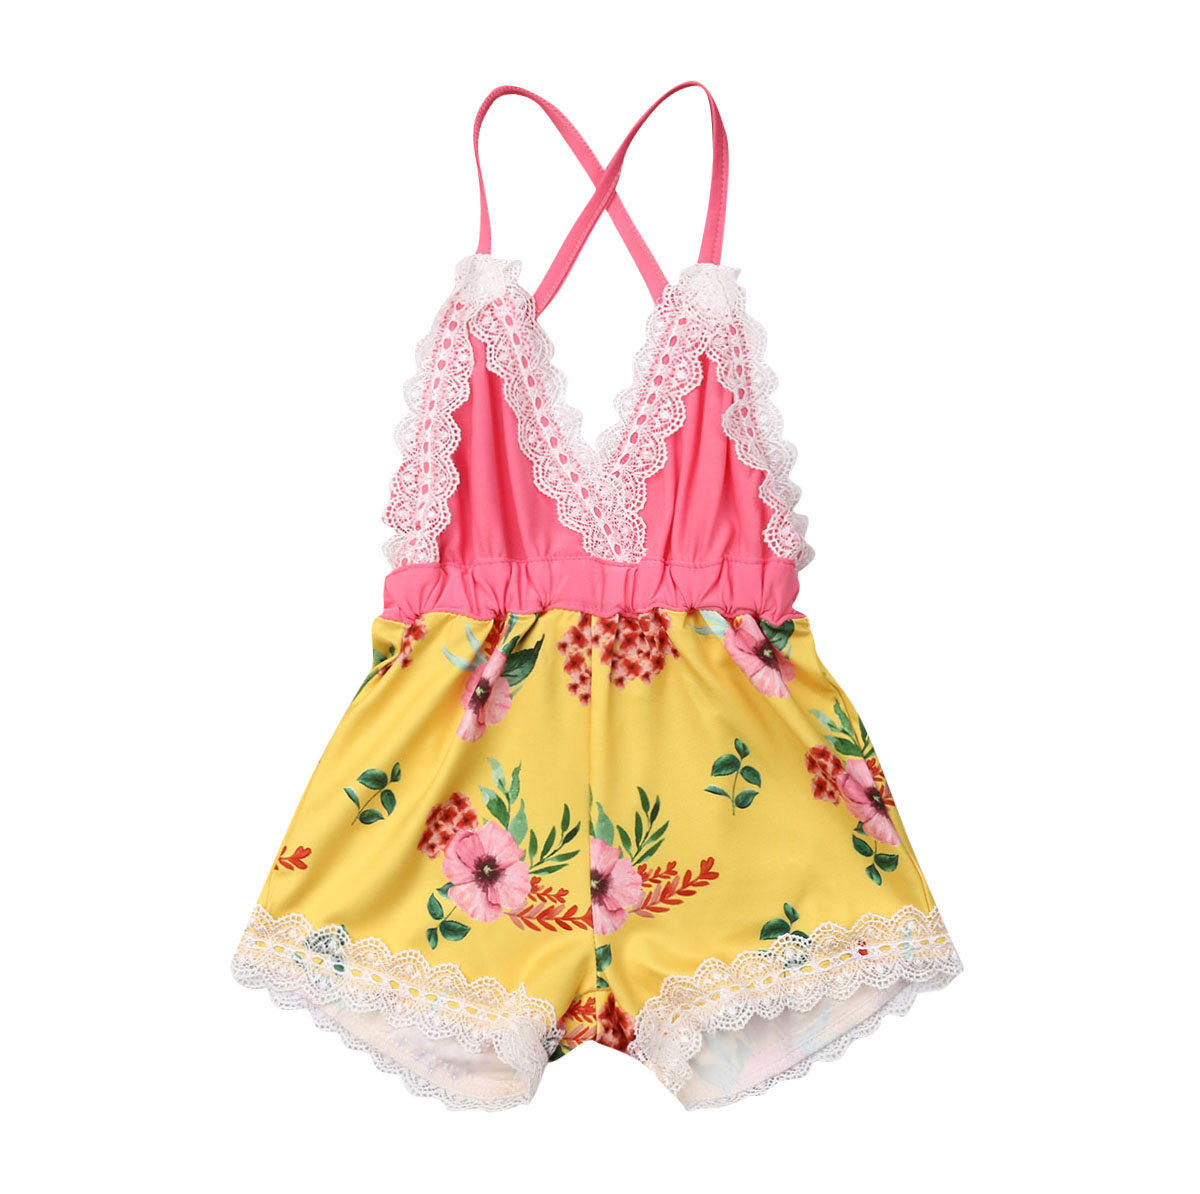 Summer Newborn Infant Baby Girl Flowers Clothes Lace Sleeveless Backless   Romper   Jumpsuit Playsuit 1Pc Outfit Clothing 0-24Months